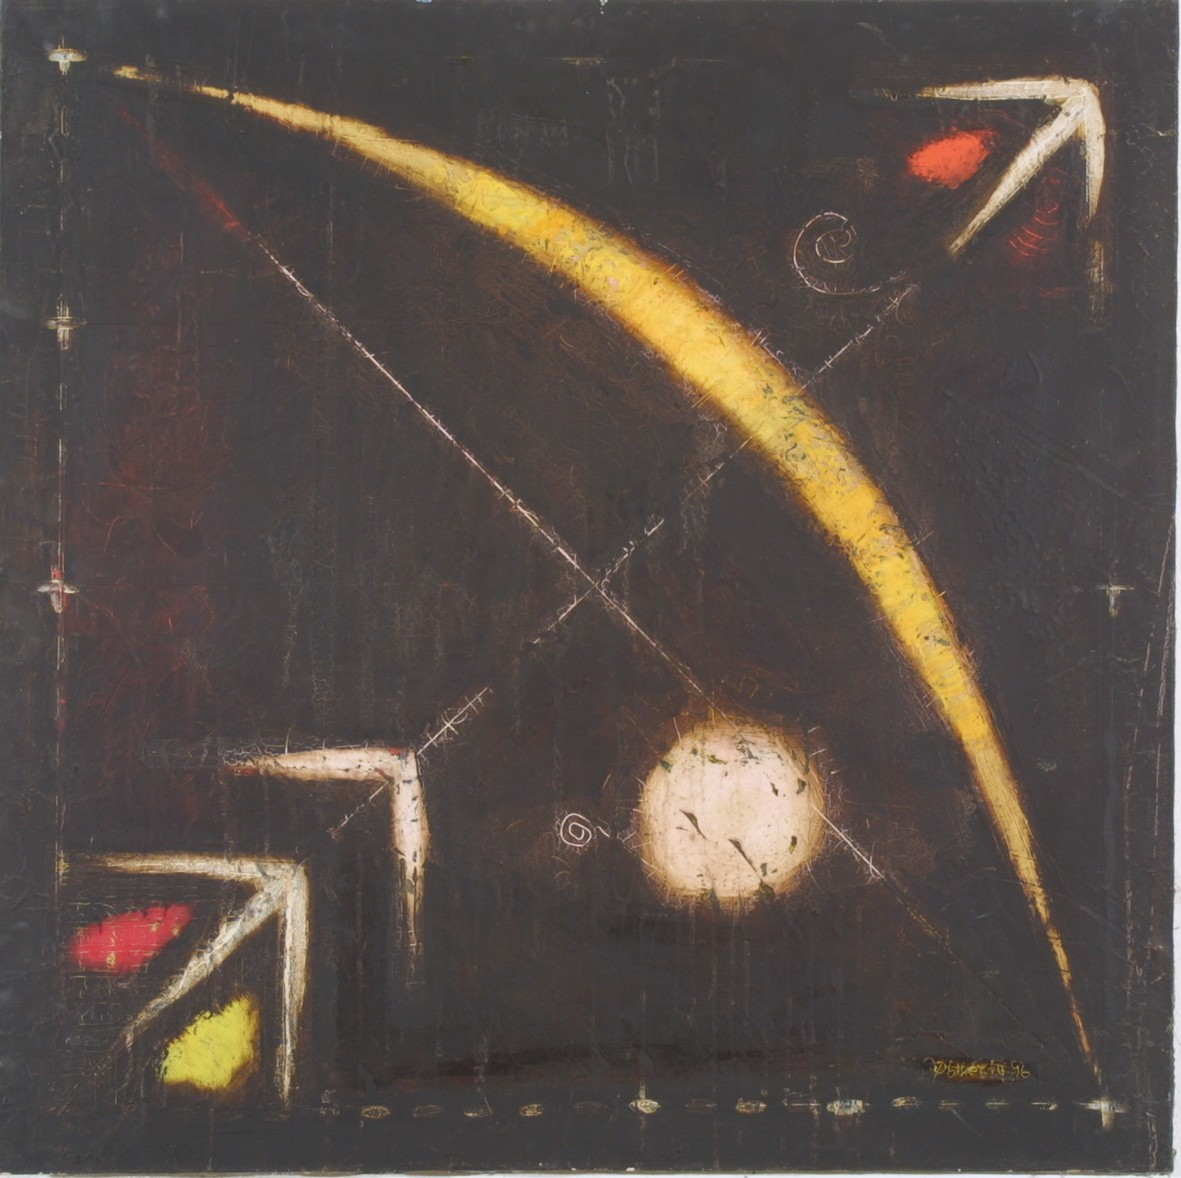 Atribute of Cupidone, 1997, oil, canvas, 90x90